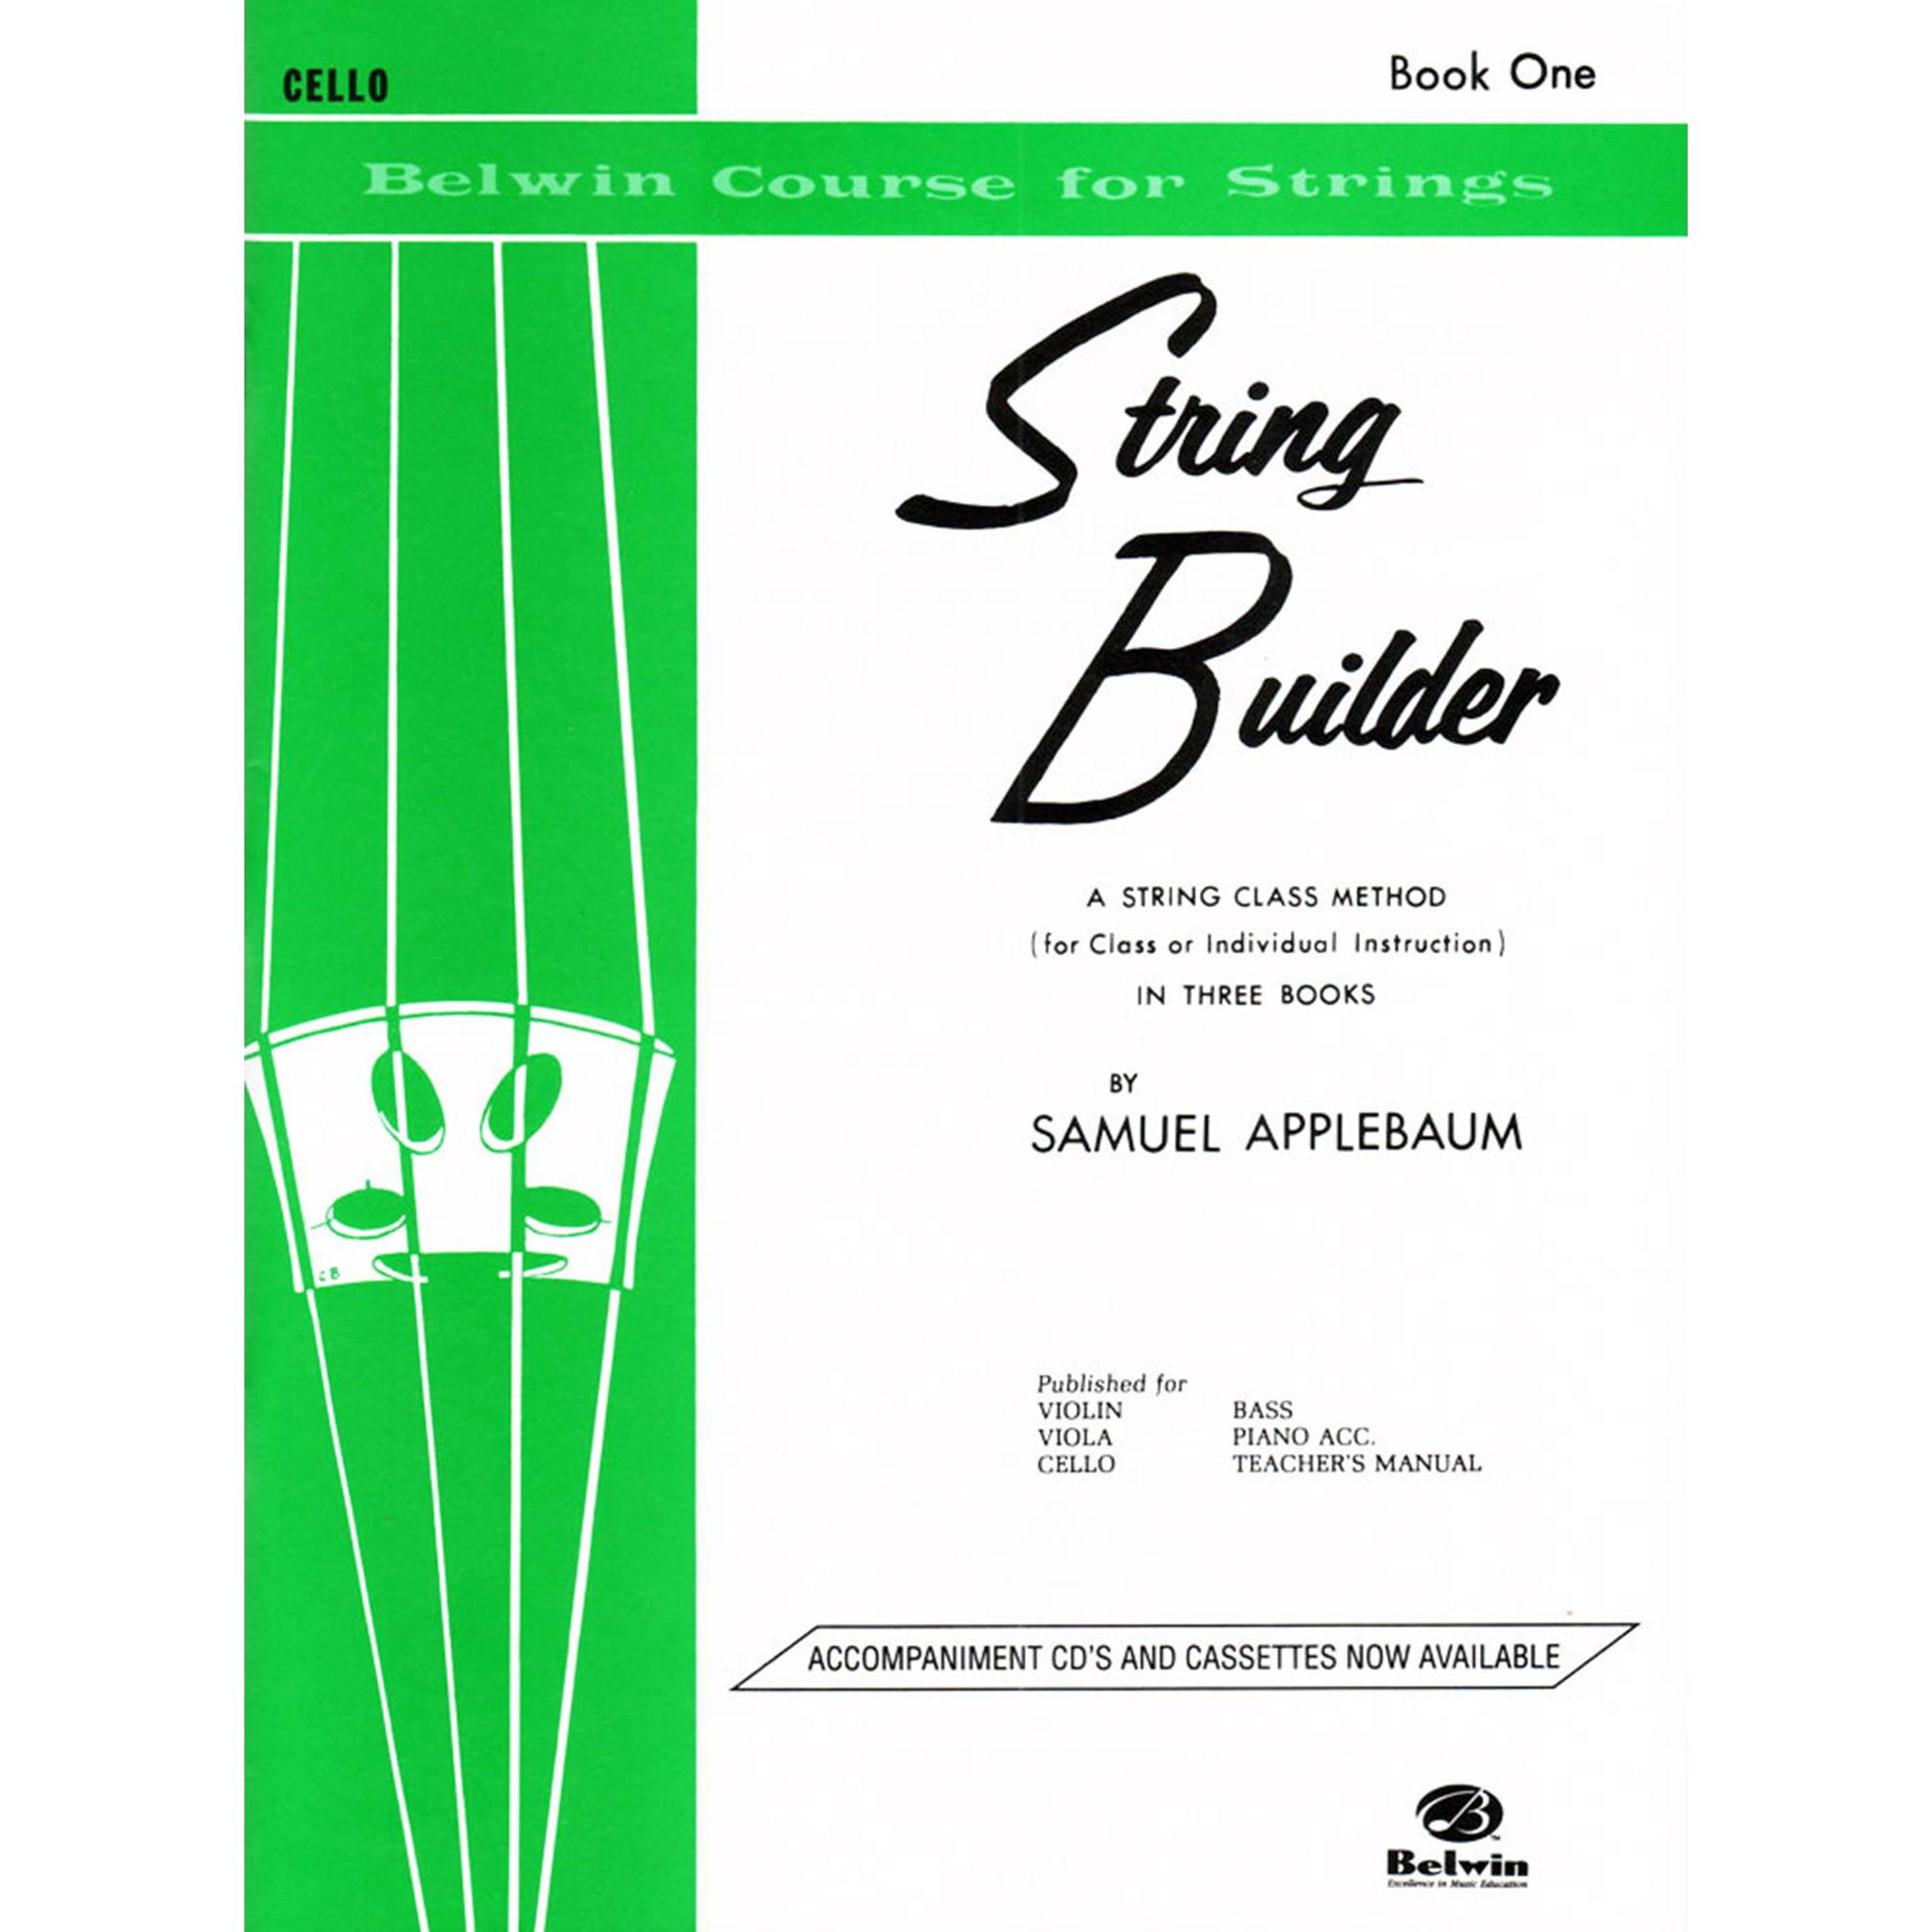 applebaum,+samuel++-+string+builder+book+1+for+cello+-+belwin+mills+publication_.jpg